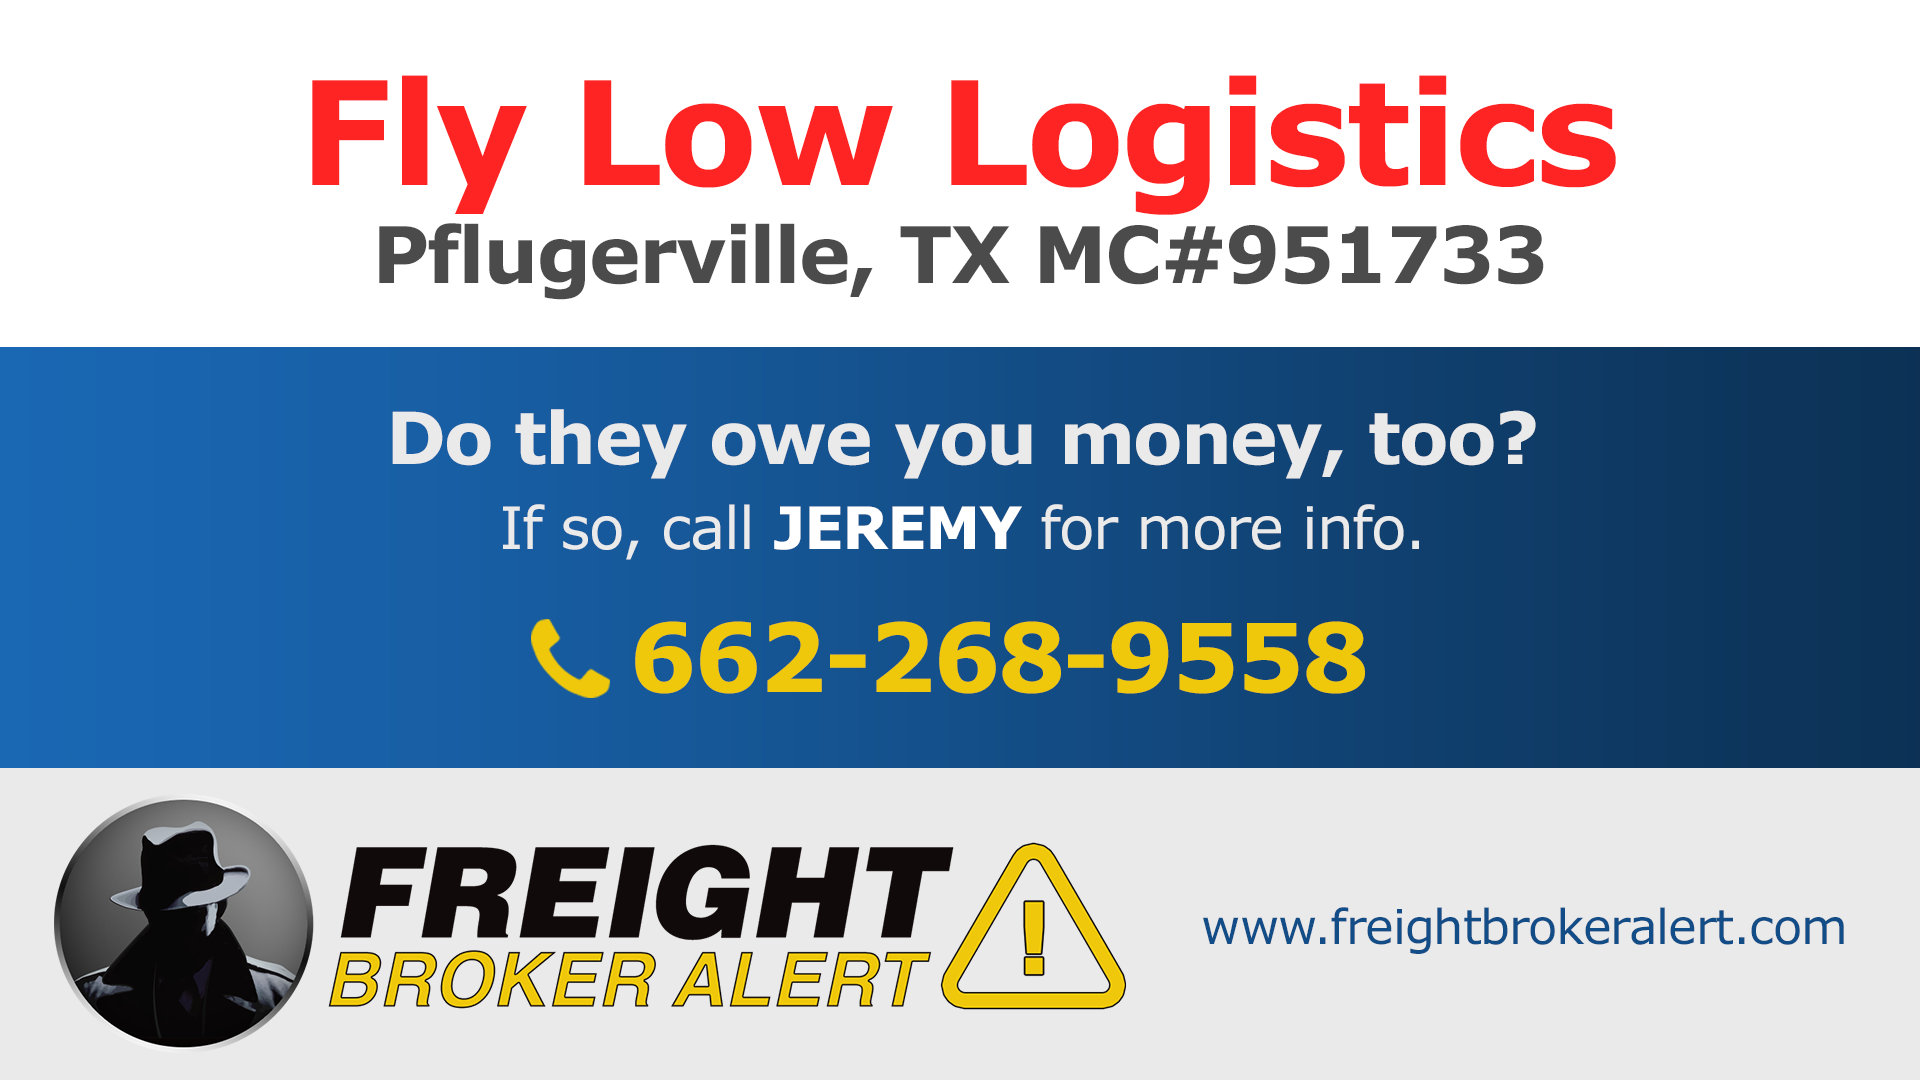 Fly Low Logistics Texas